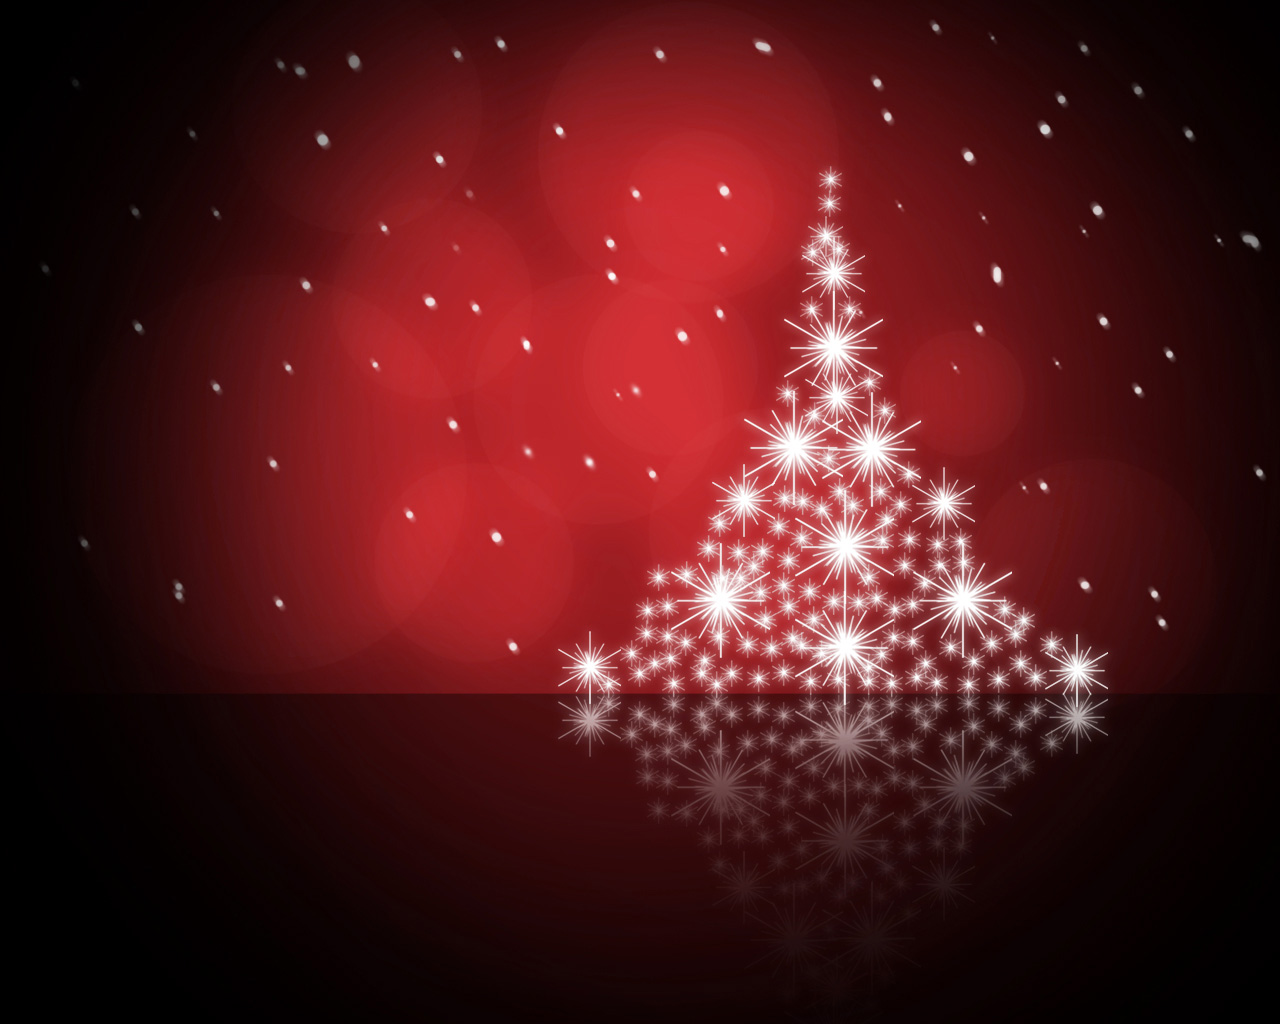 red christmas tree background - photo #9